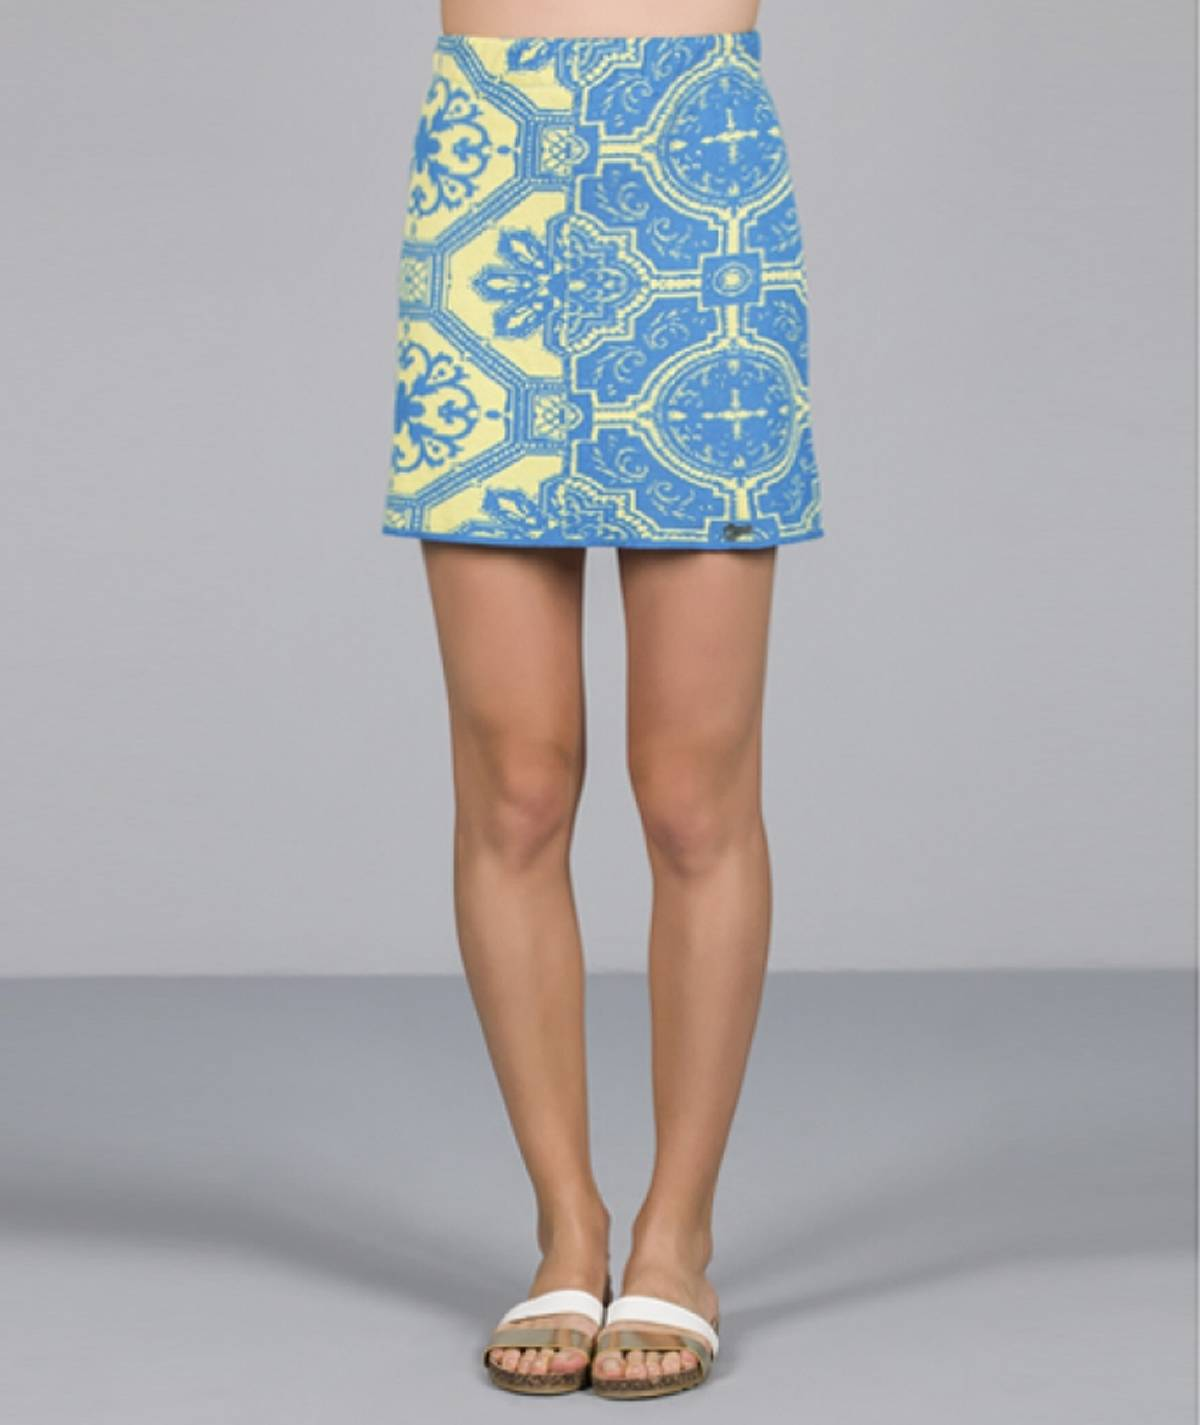 Skirt with tile motif